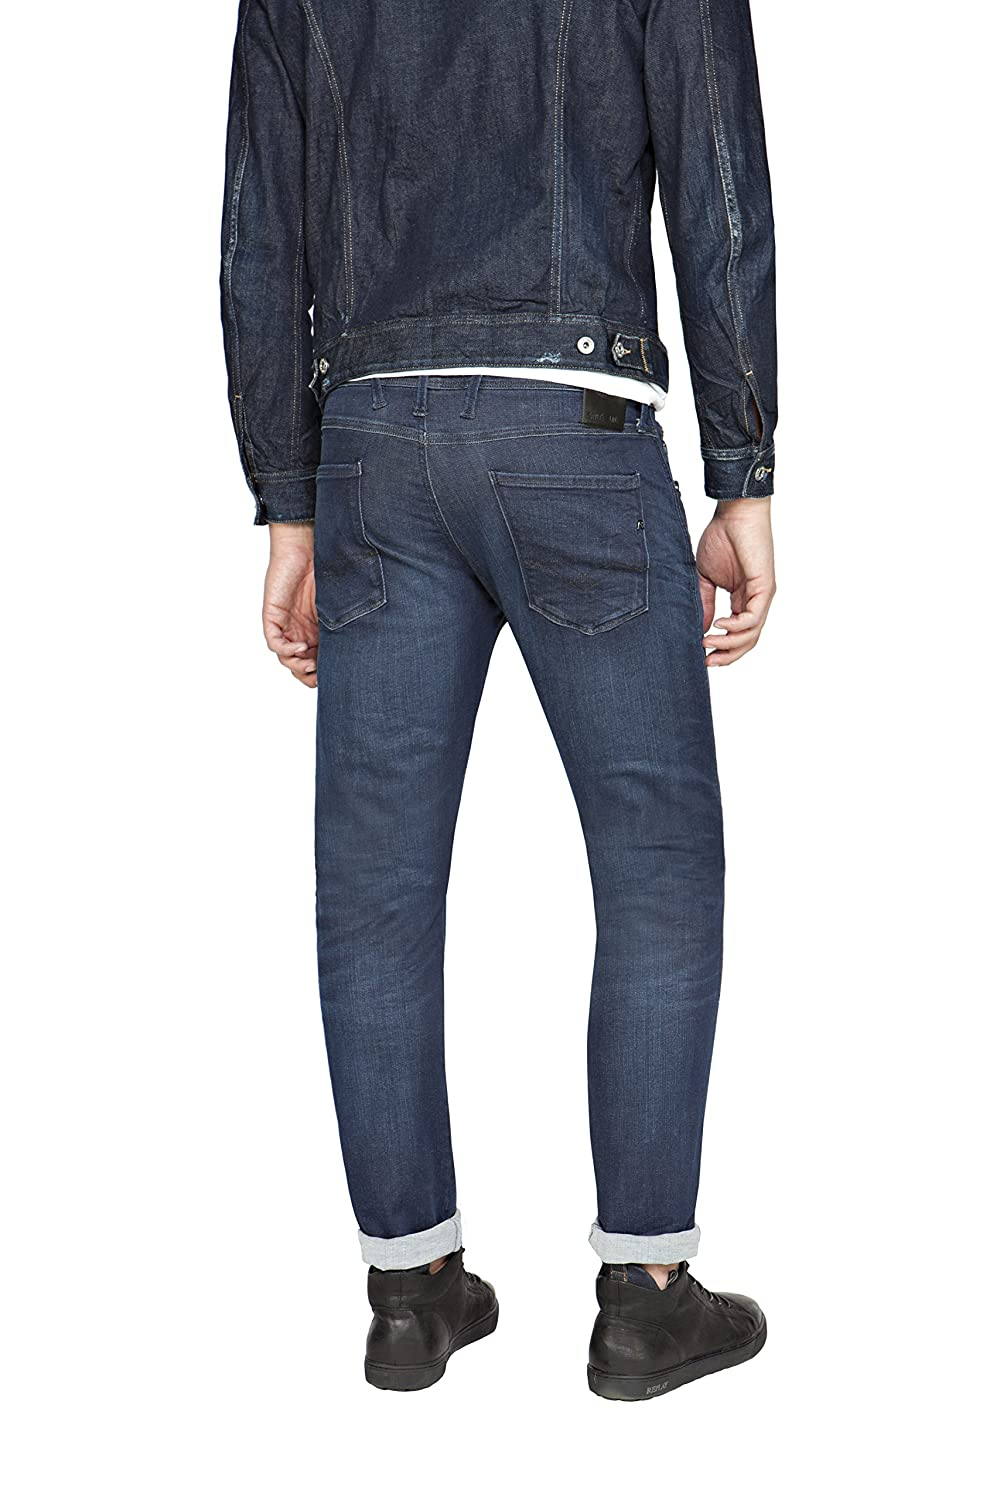 d11cd919583 Replay Men s Anbass Slim Jeans  Amazon.co.uk  Clothing